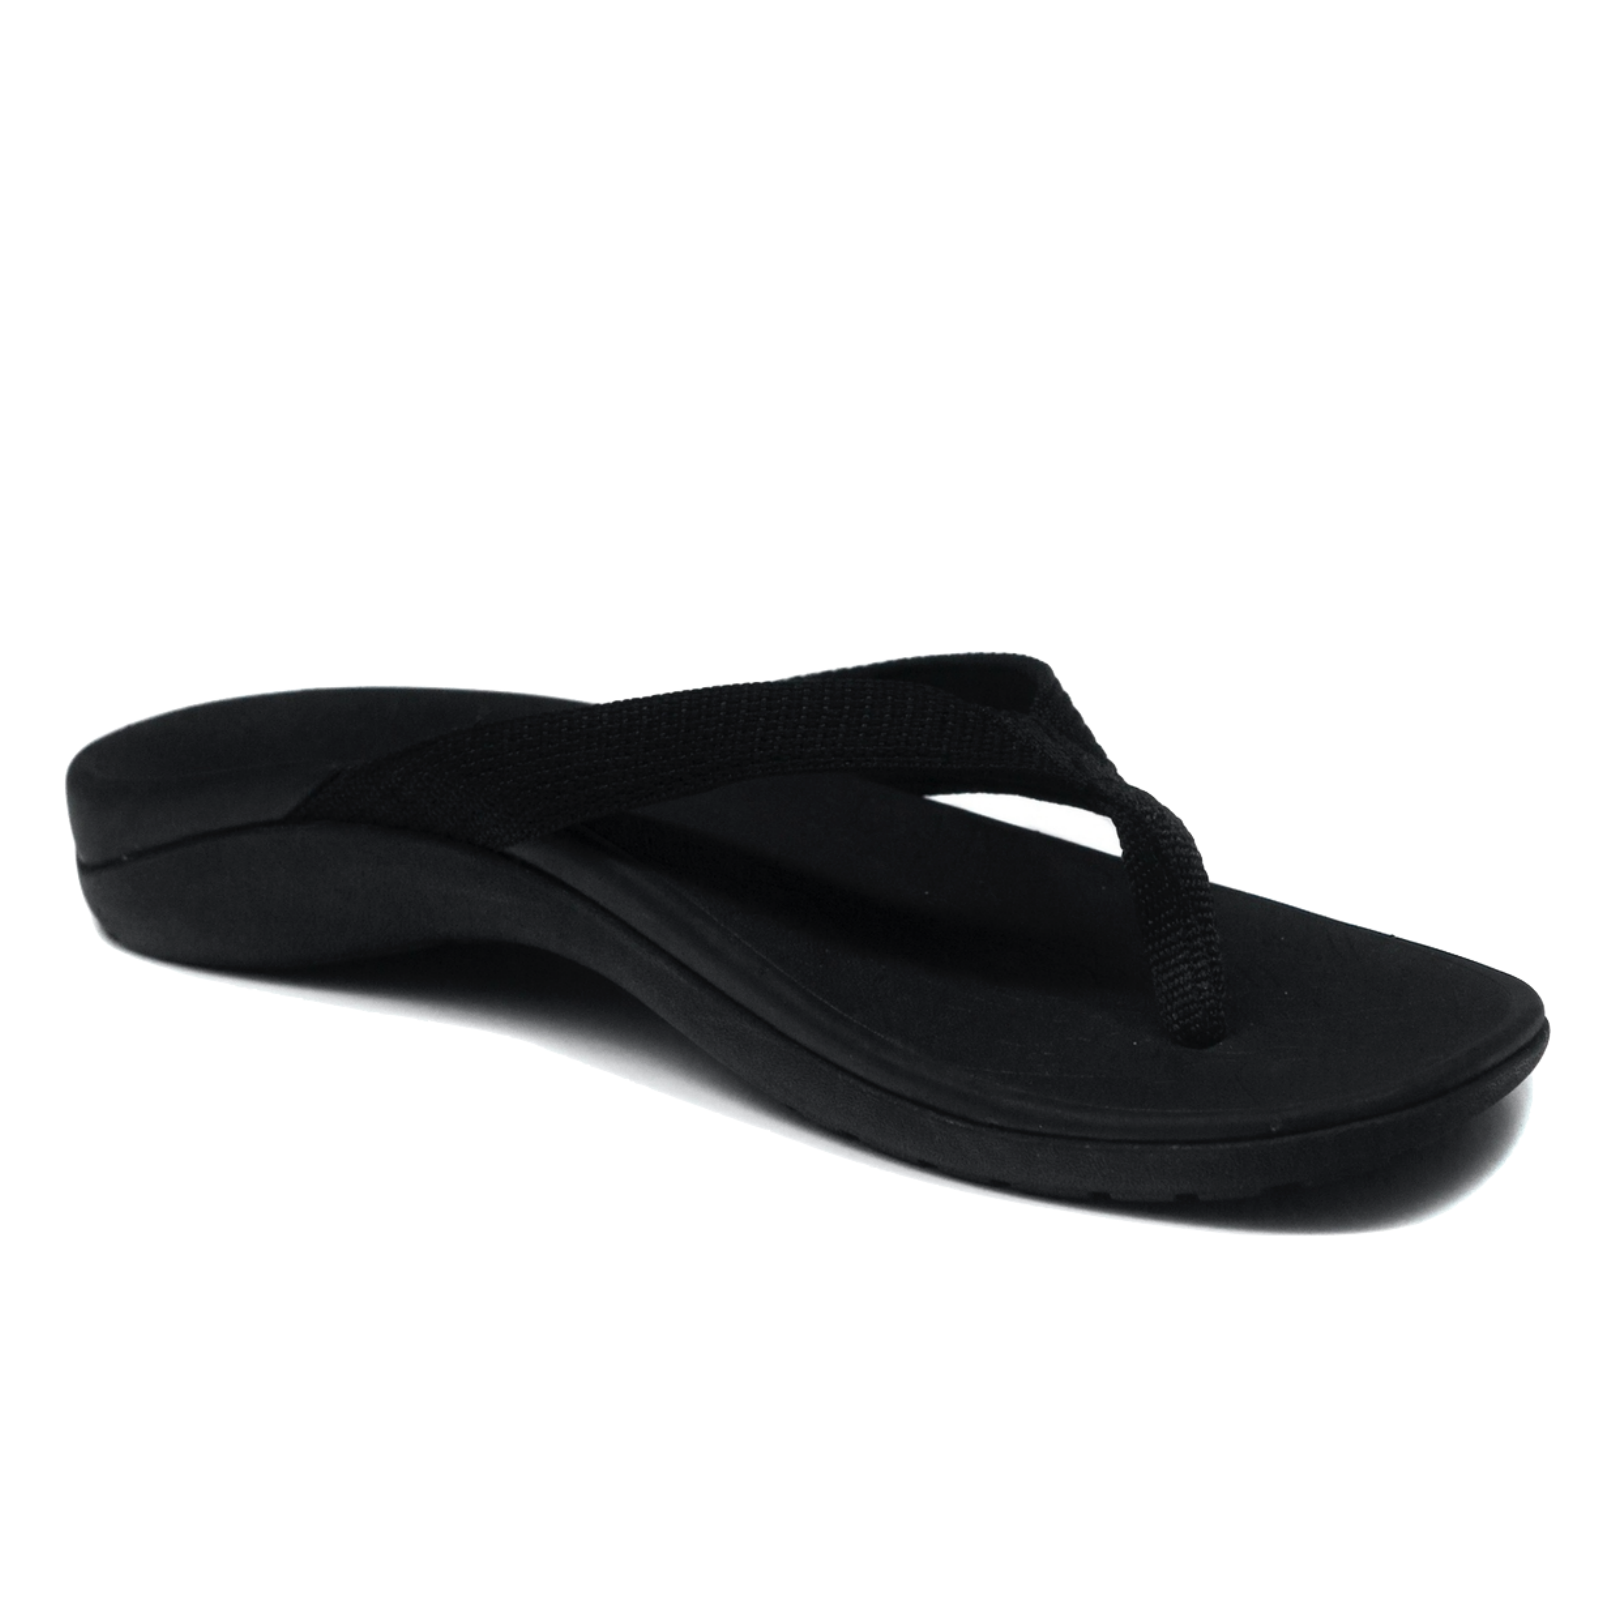 2082ed9d082232 AXIGN Basic Orthotic Arch Support Flip Flops Sandal Thongs w Strap ...